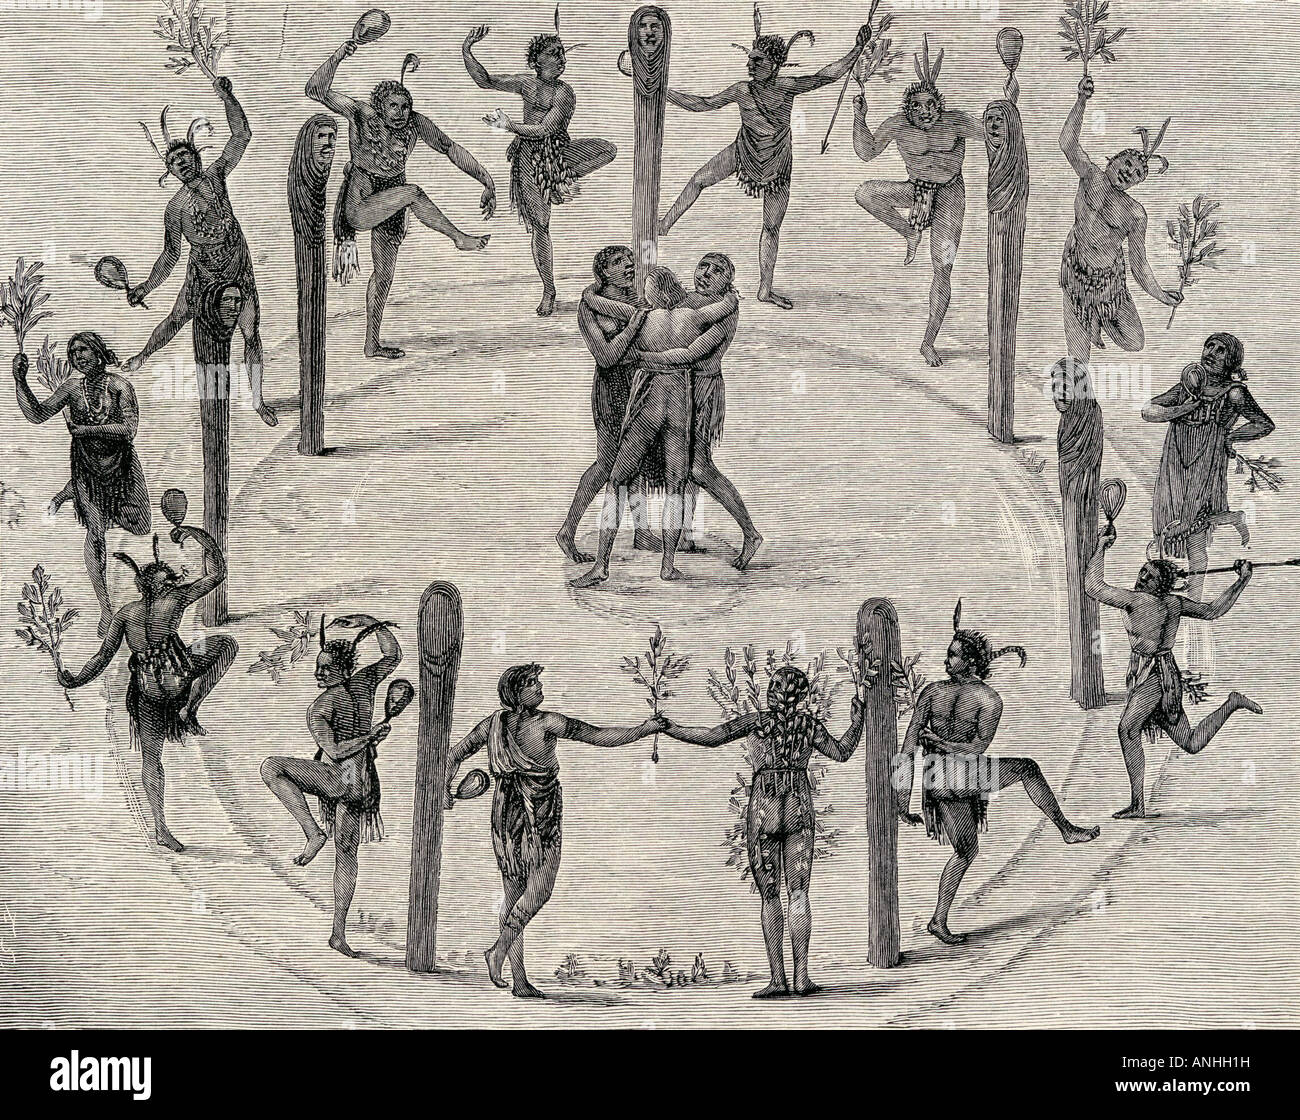 A Dance of the Carolina Indians at Roanoke Engraving from the original drawing by John White 1540 1606 - Stock Image